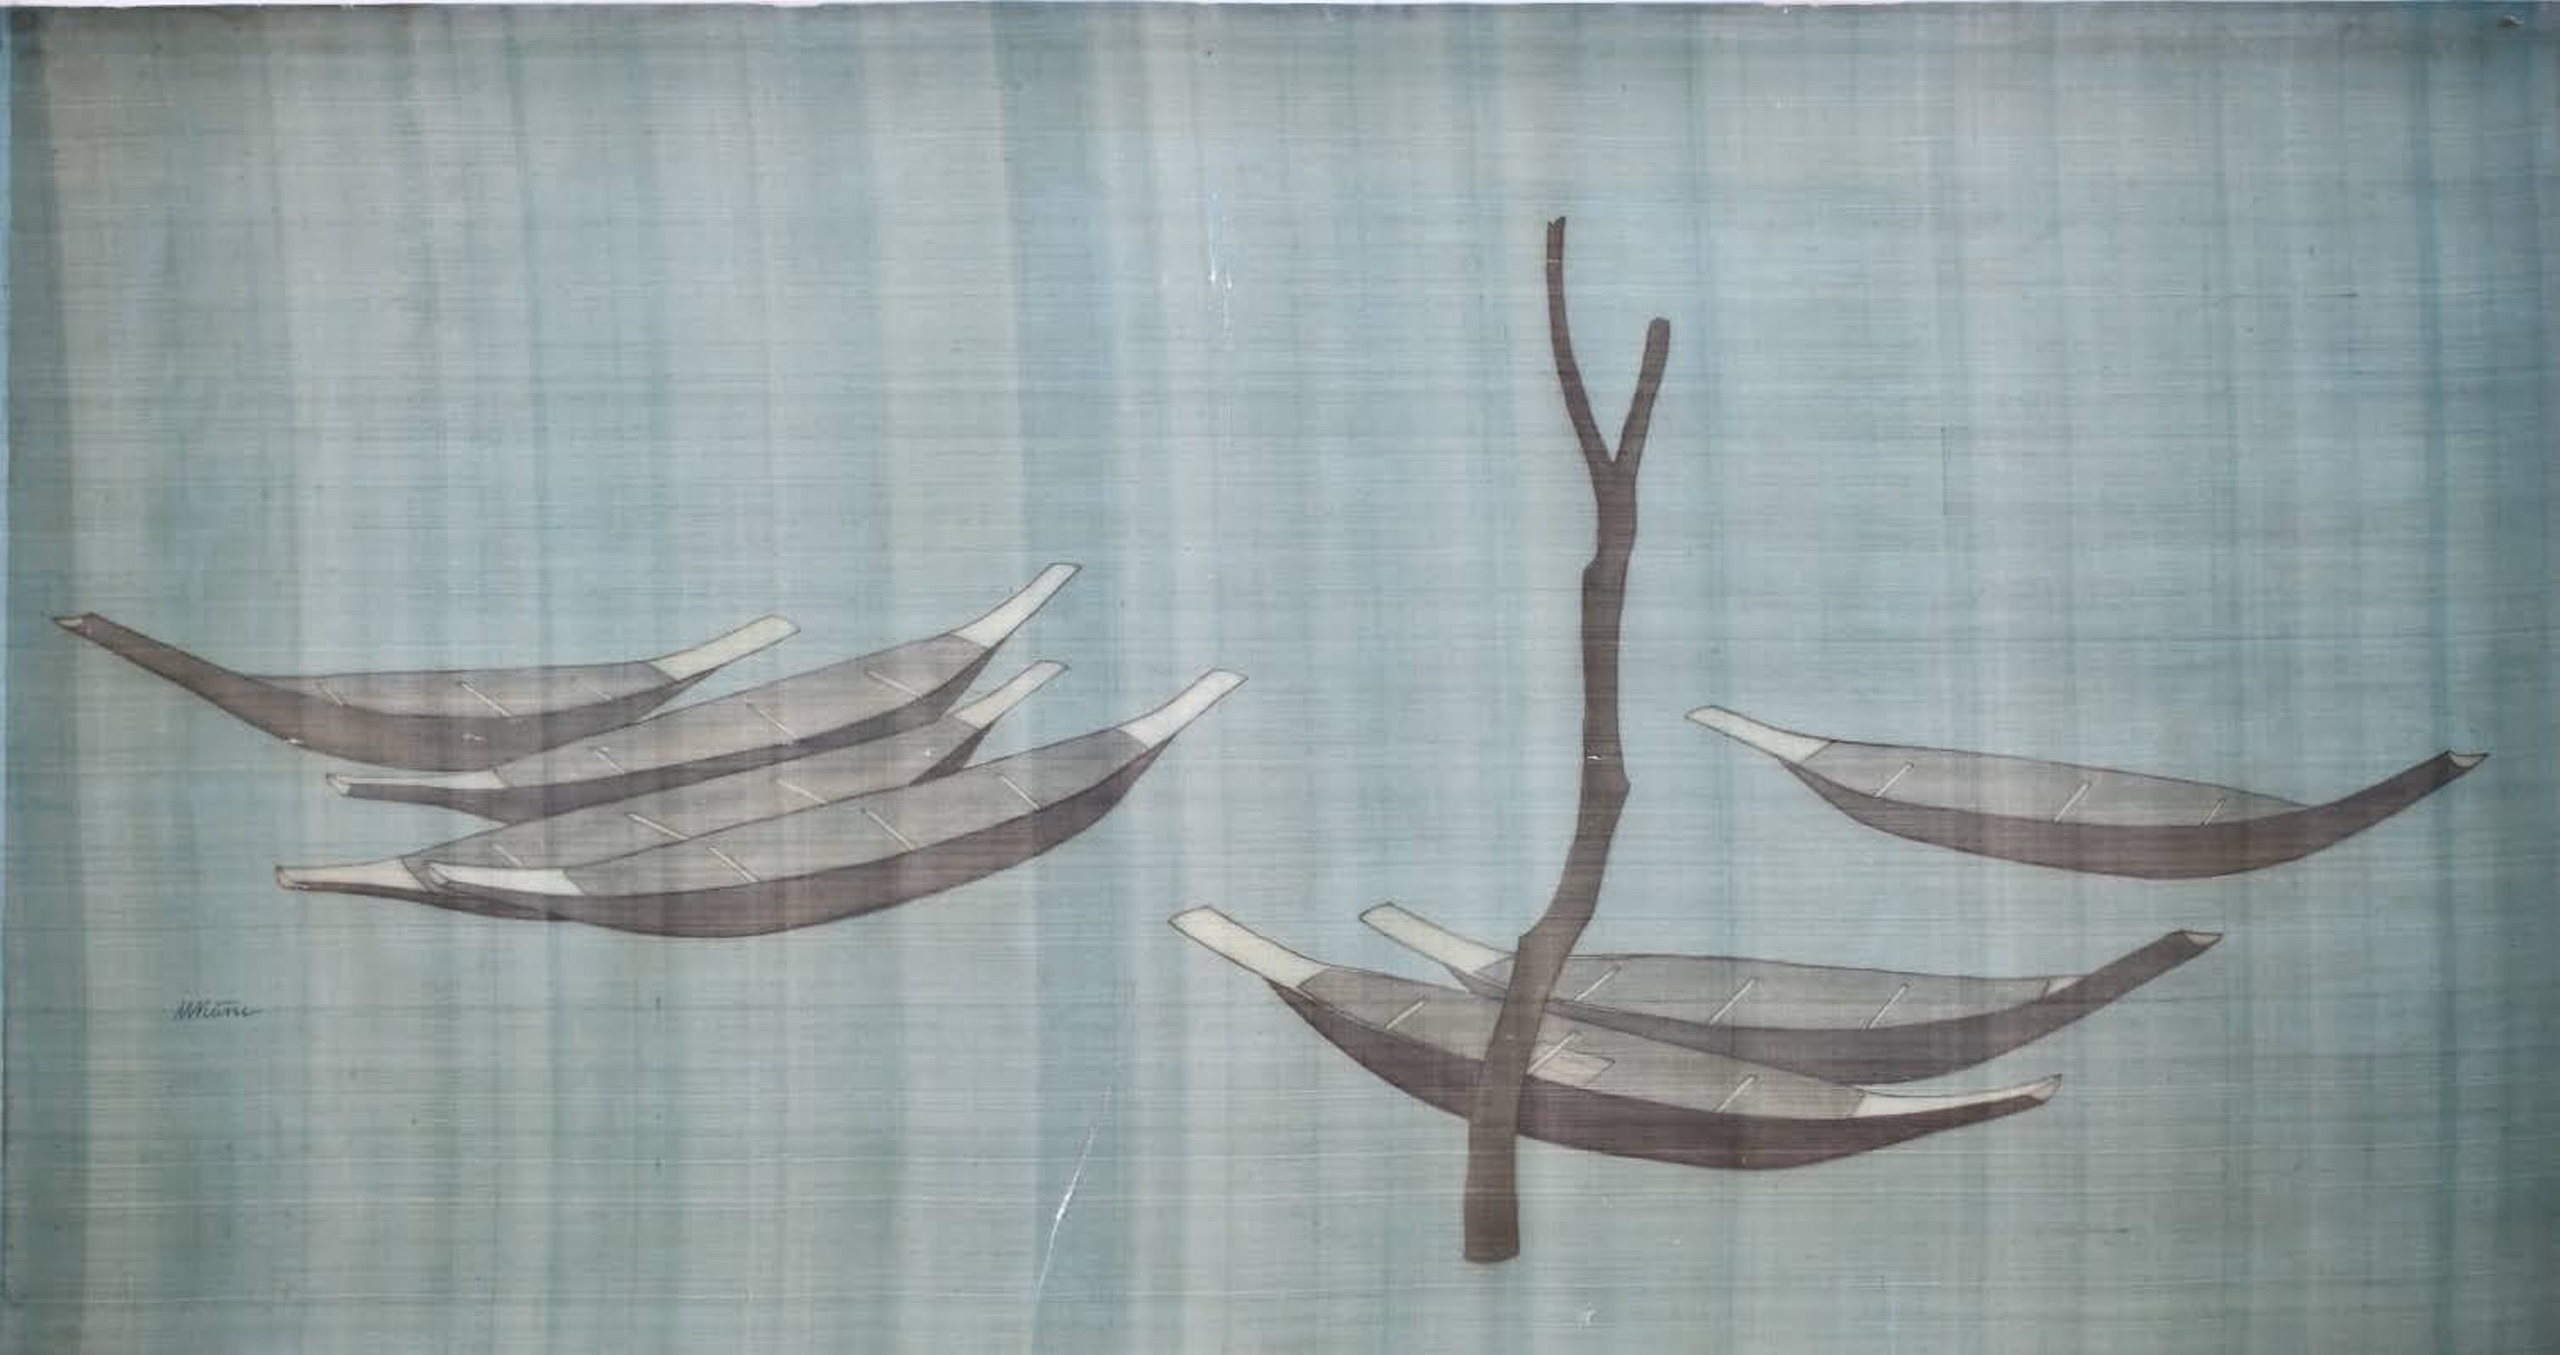 Dug-out canoes, silk painting, 76cmx147cm by the artist Hoang Minh Hang in a supplied photo.